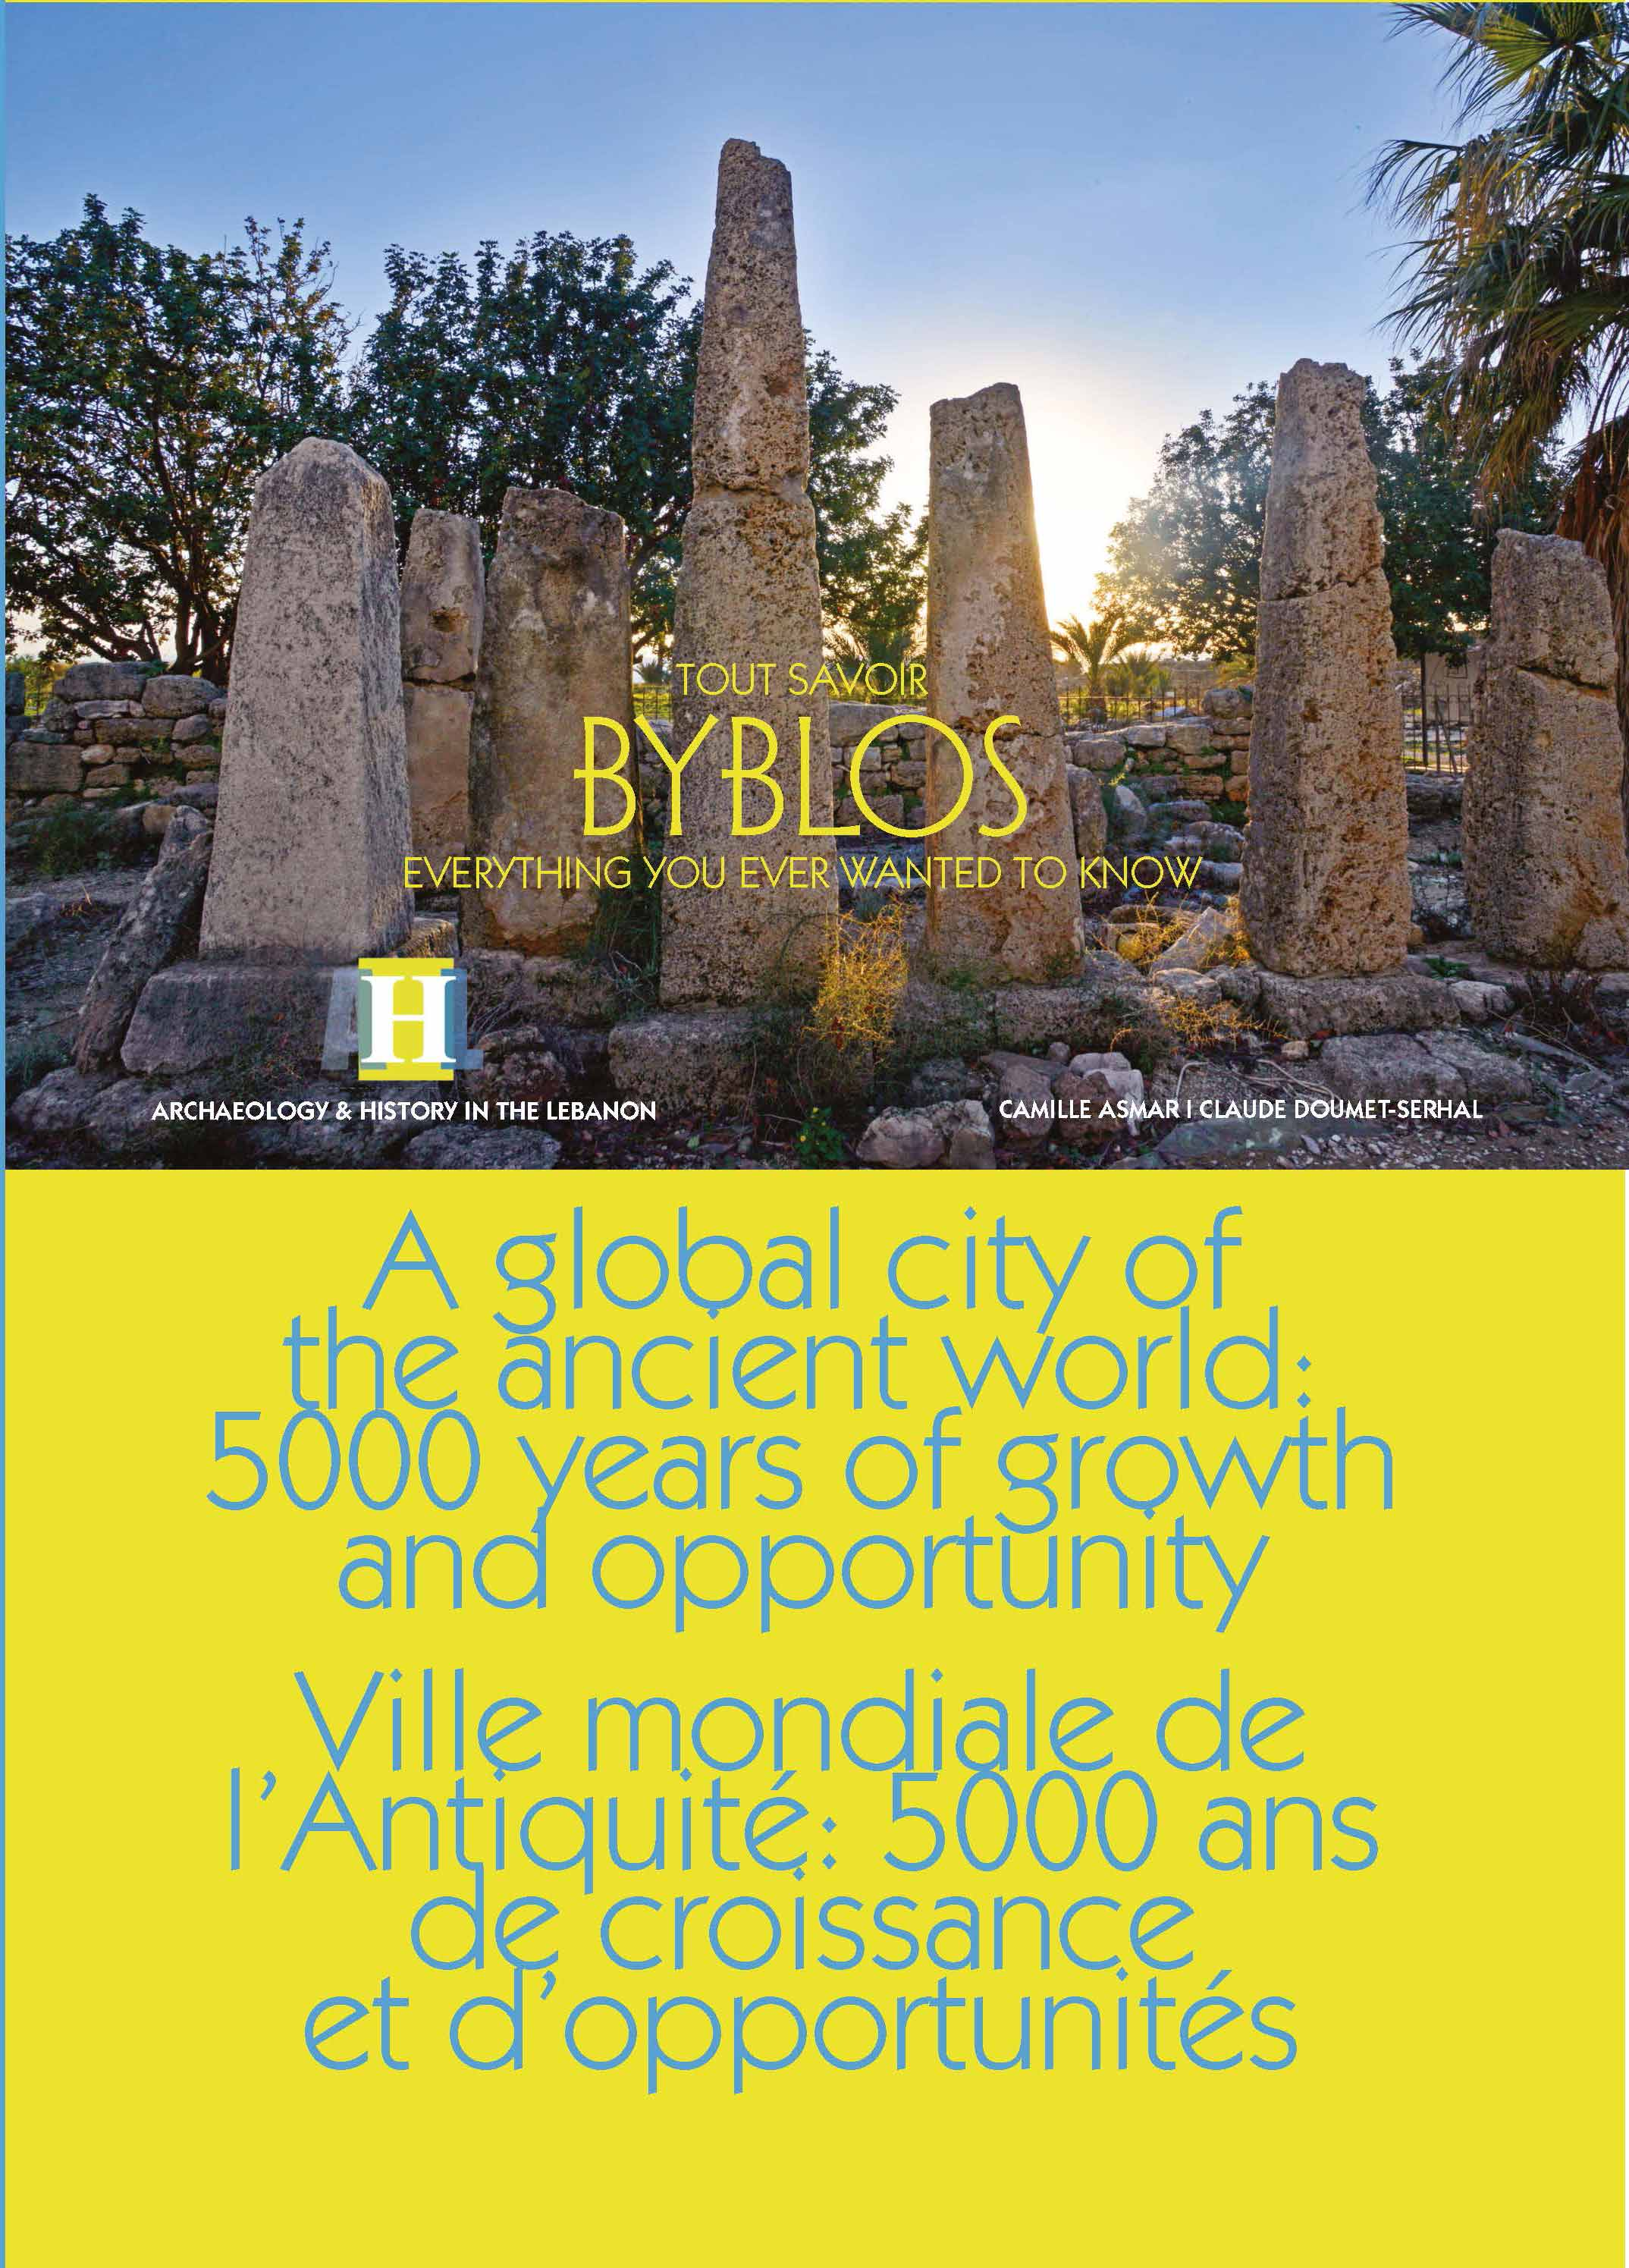 AHL Byblos the guide cover Page 1